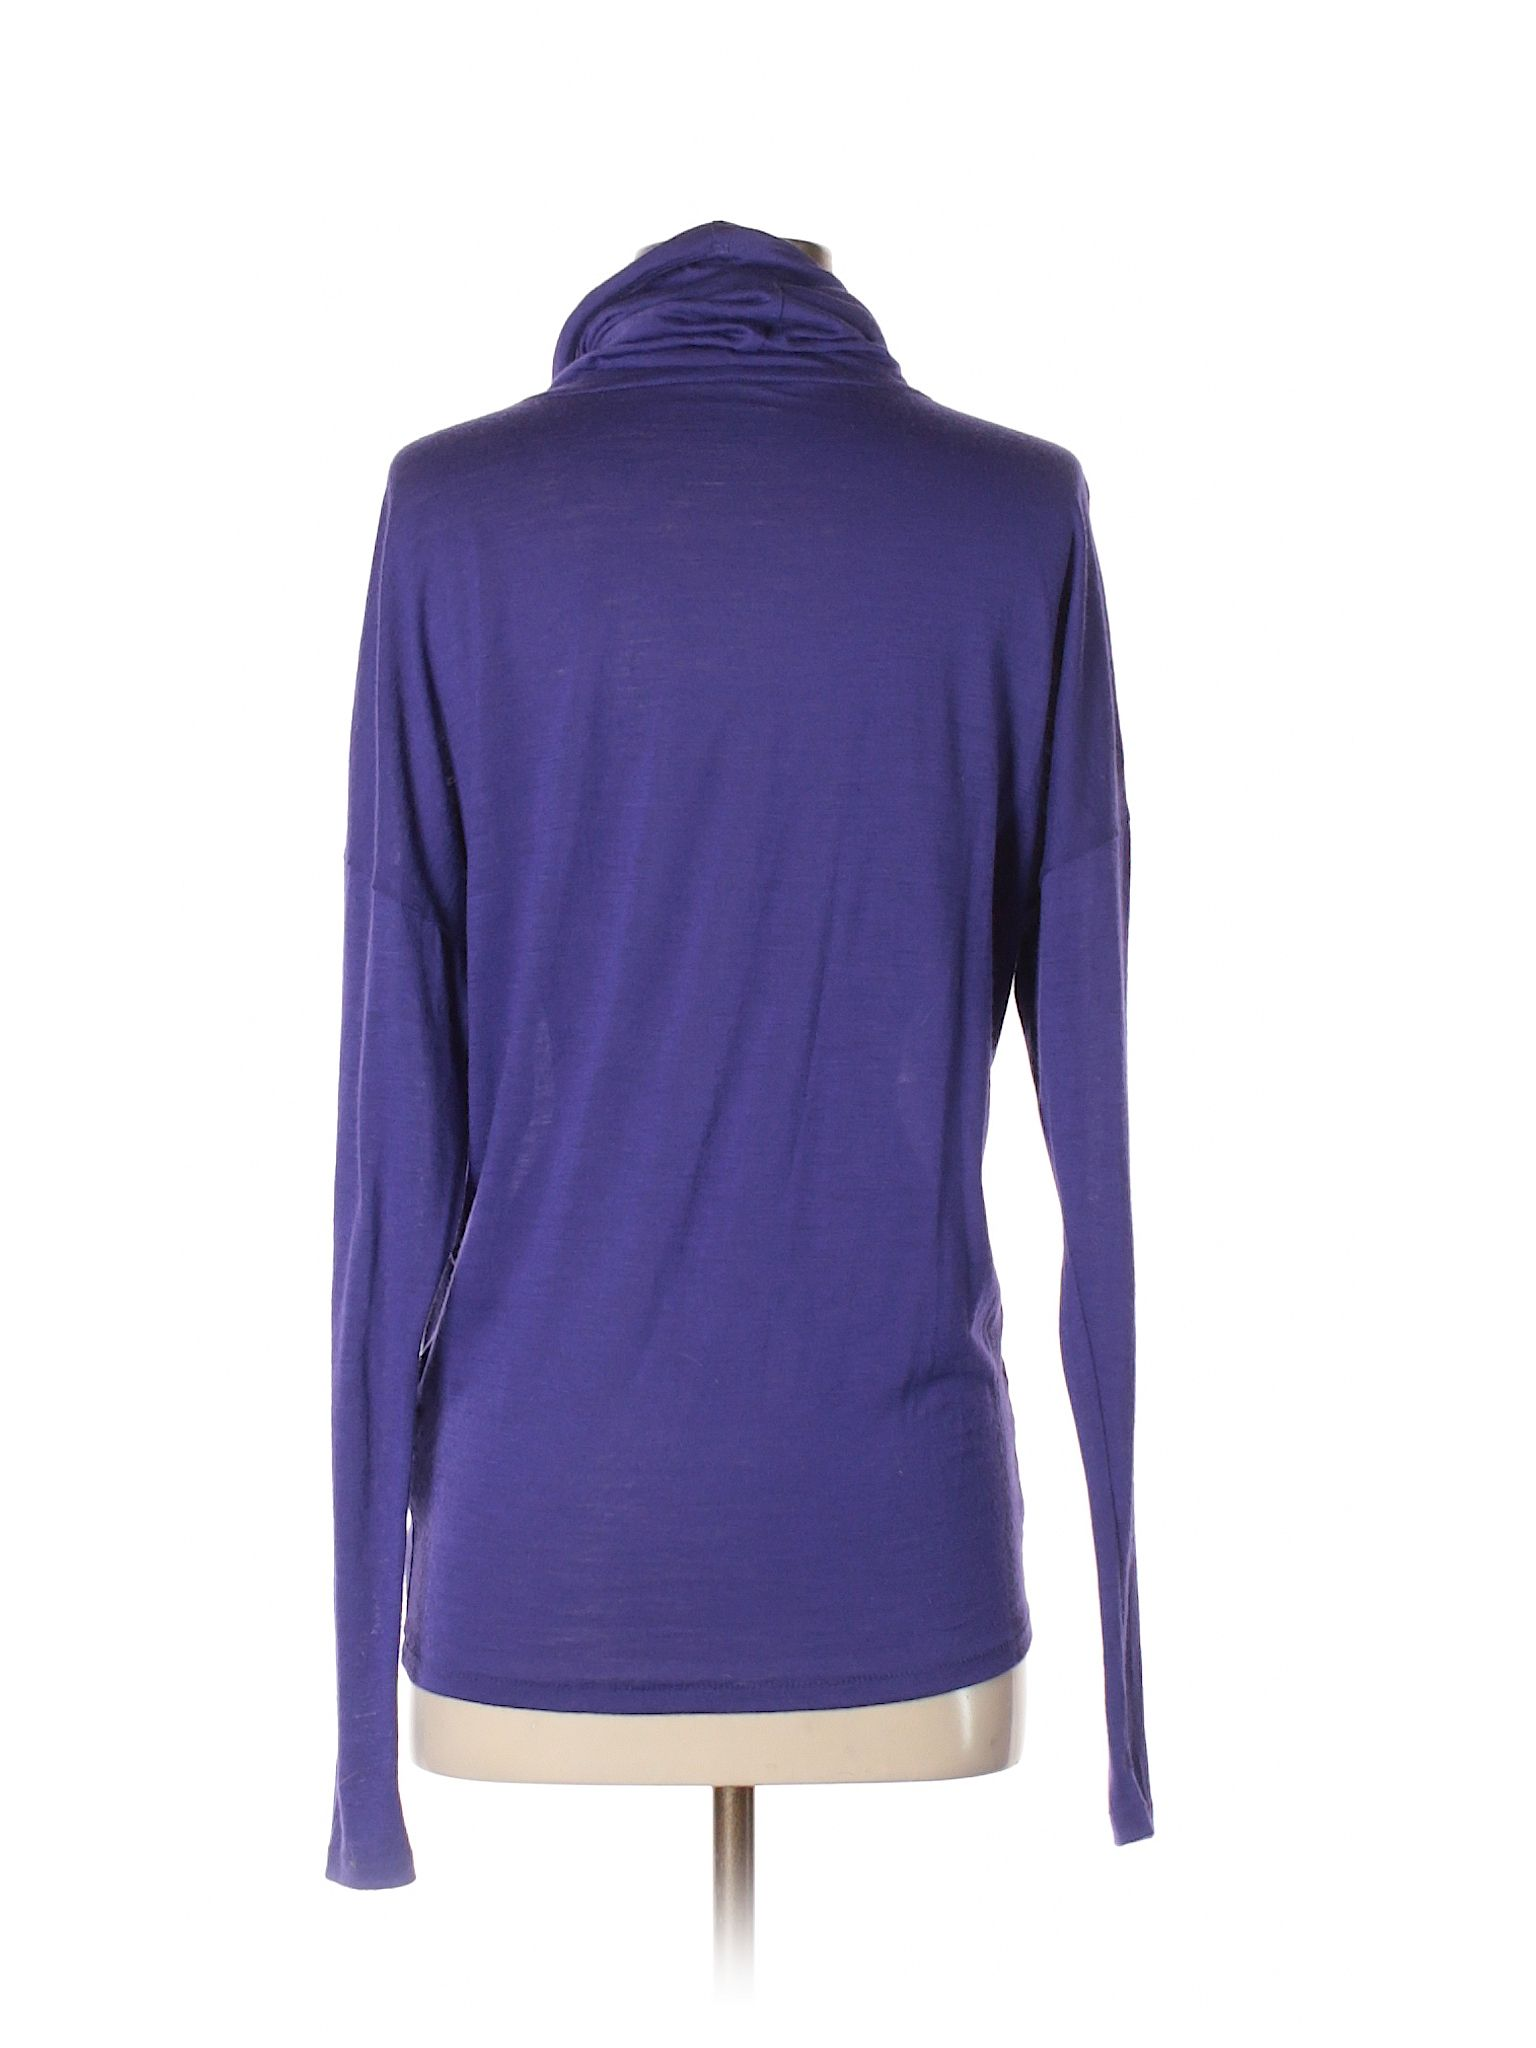 Check it out Nike Zip Up Hoodie for $11.99 on thredUP!